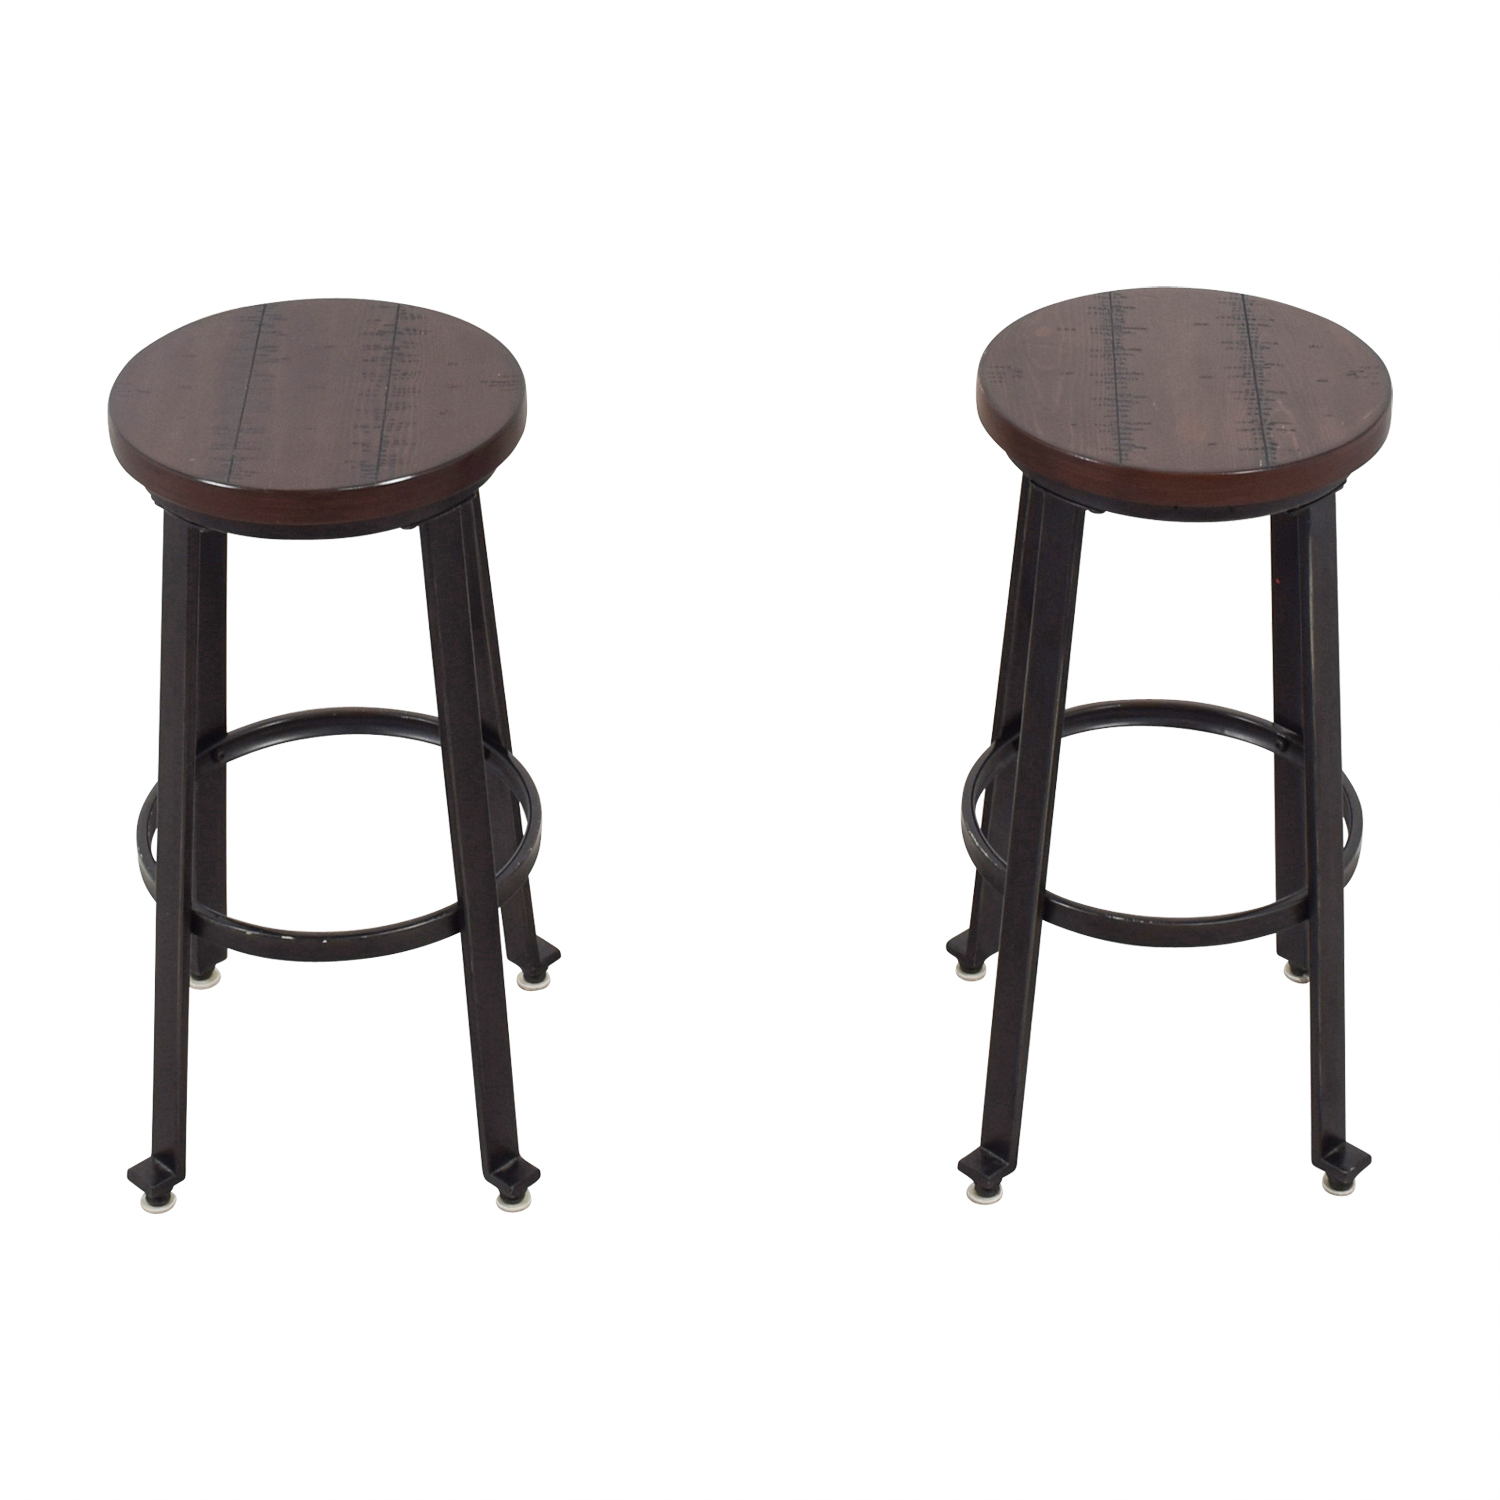 Wood and Metal Barstools used